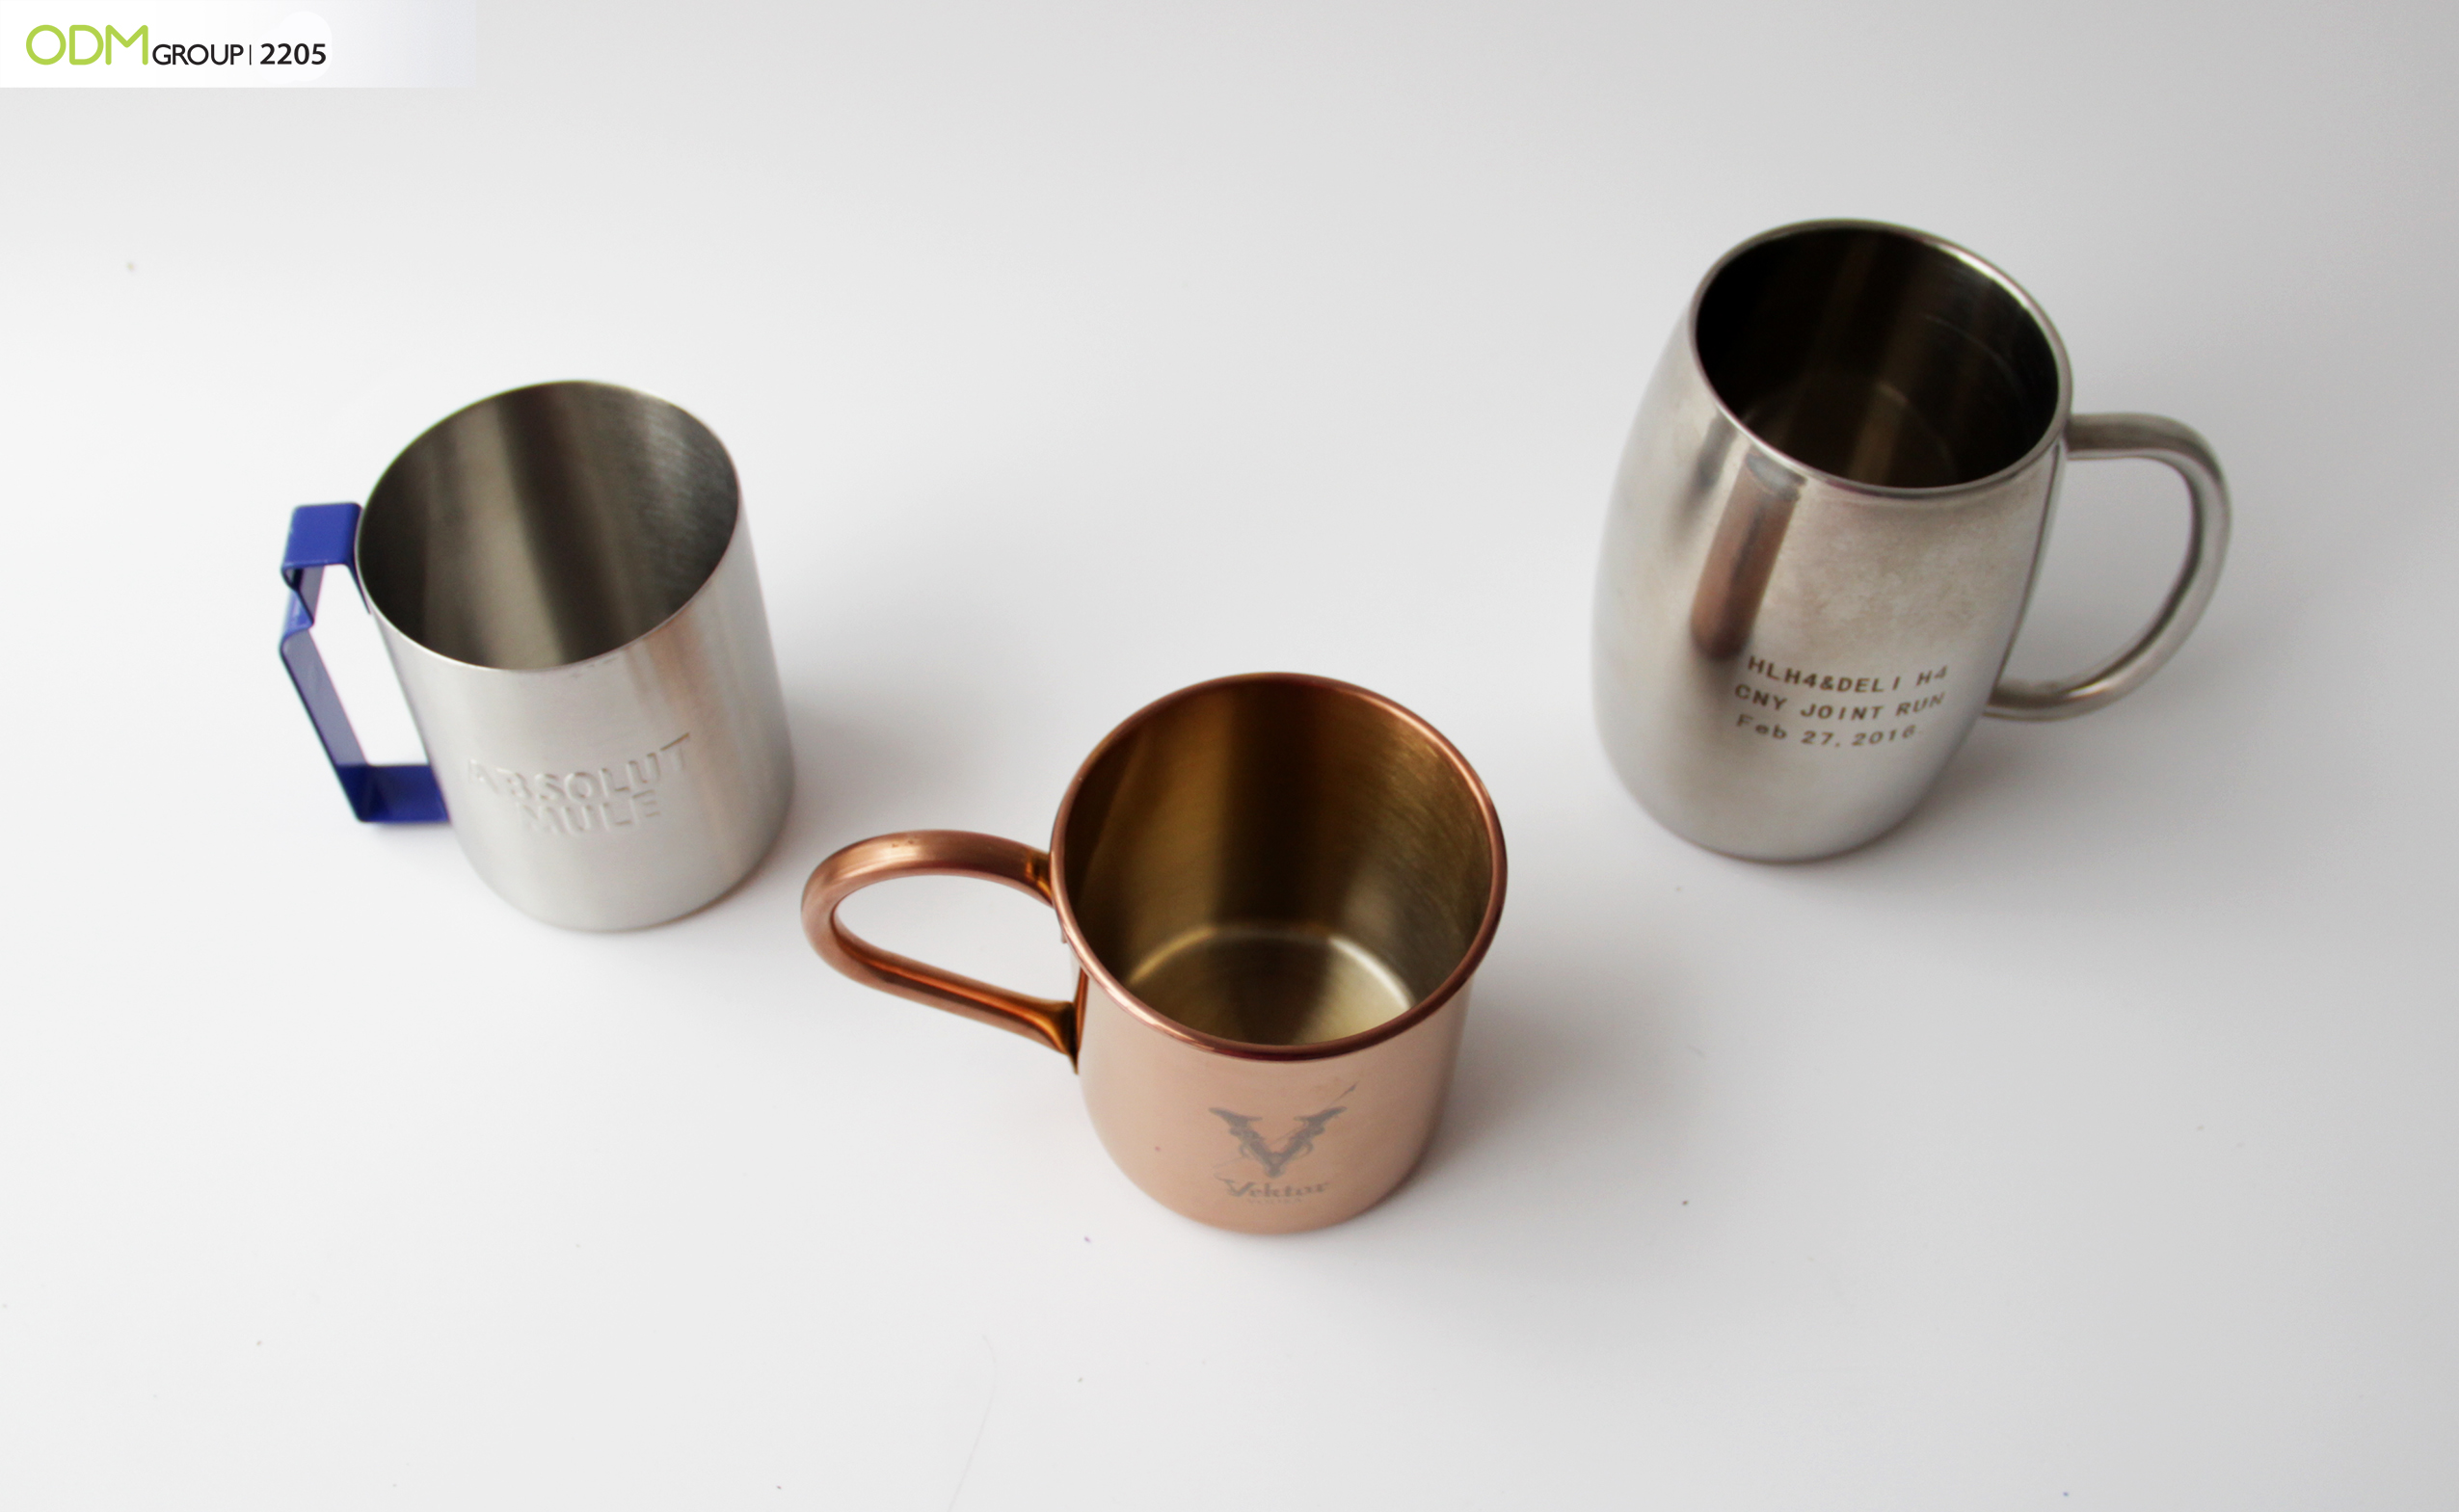 Trendy Customized Drinkware: Rum Cups